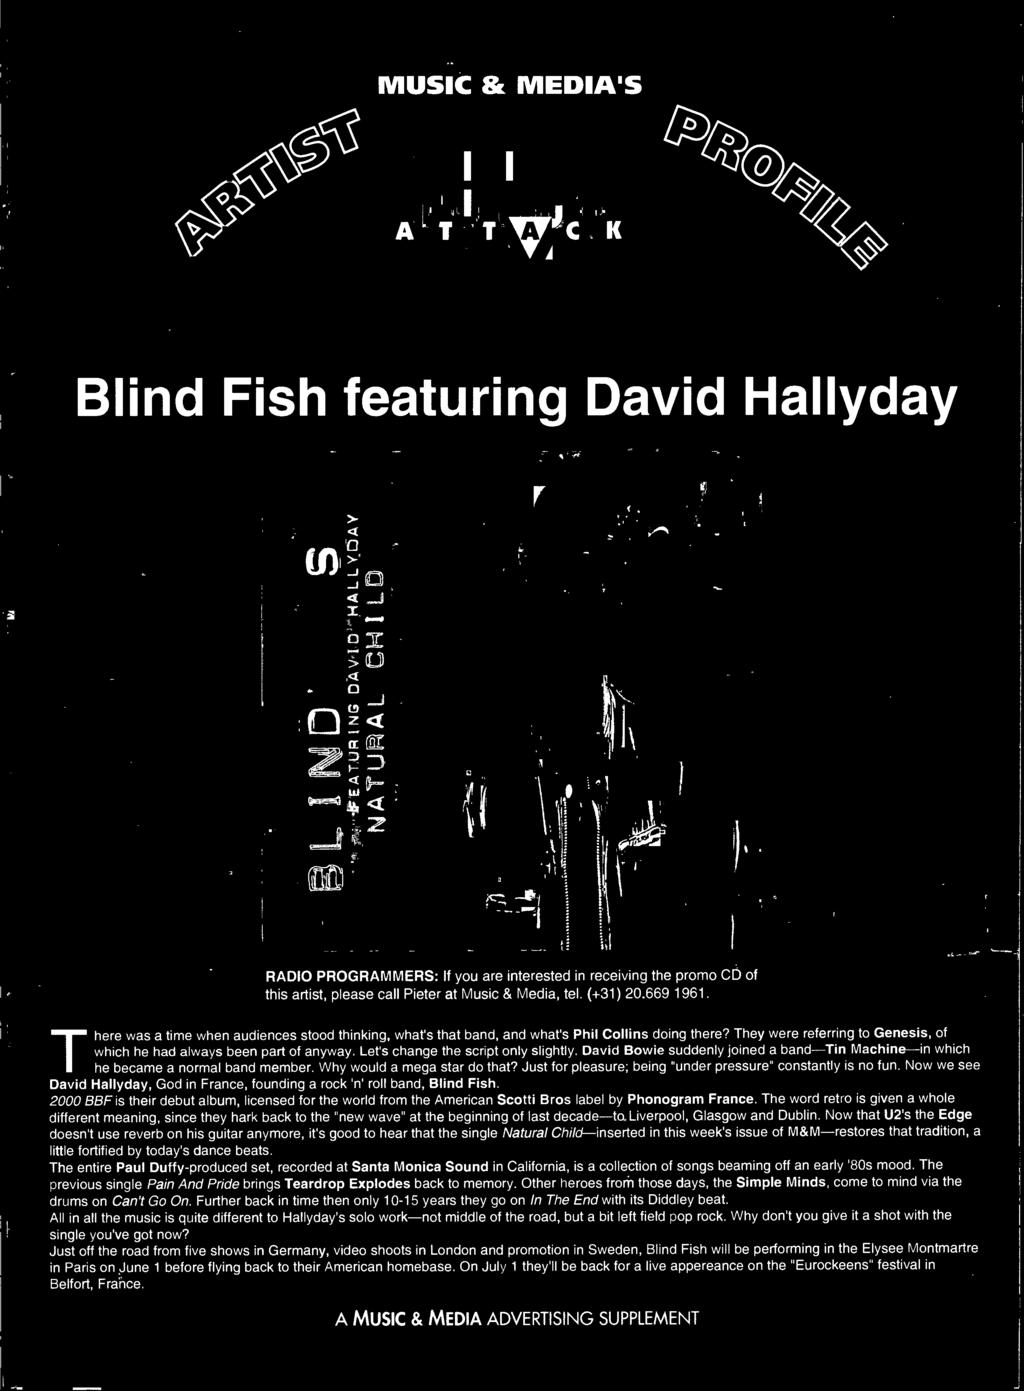 Now we see David Hallyday, God in France, founding a rock 'n' roll band, Blind Fish 2000 BBF is their debut album, licensed for the world from the American Scotti Bros label by honogram France.